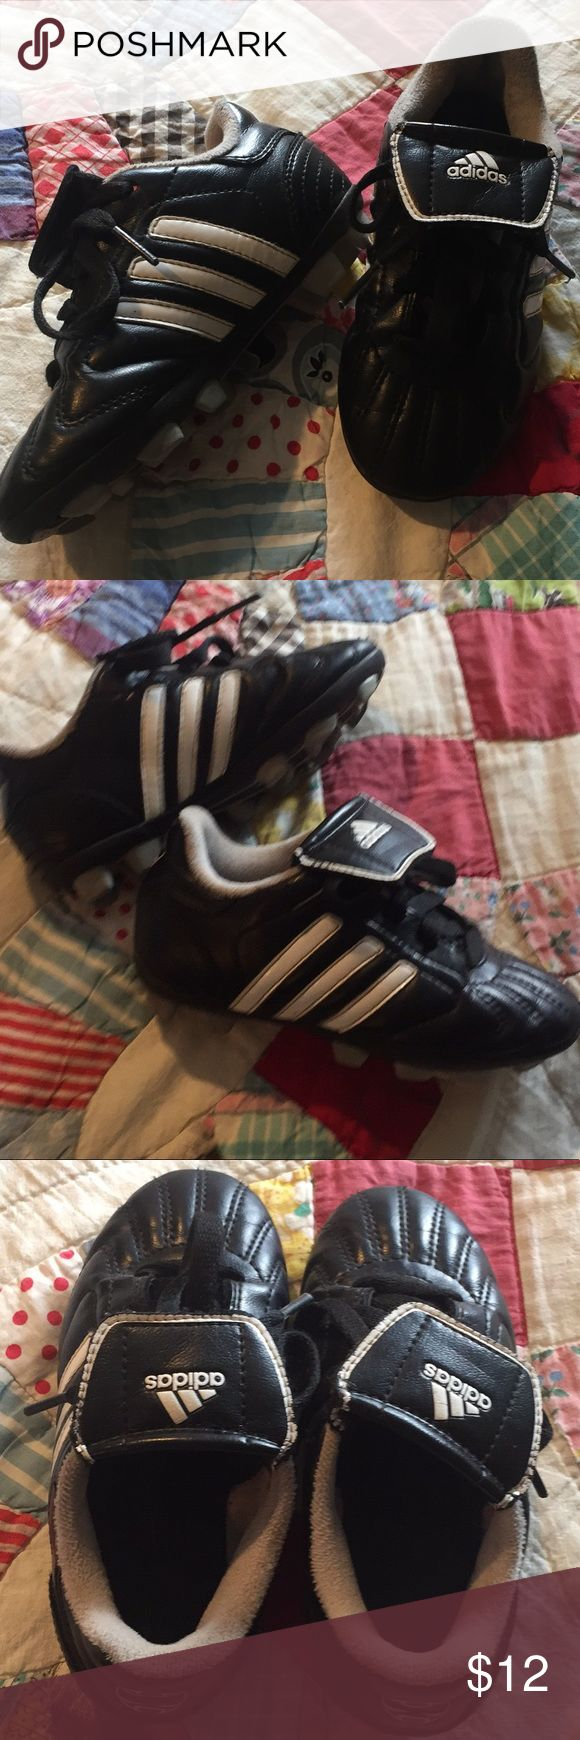 Adidas Soccer Cleats Unisex Adidas kids soccer cleats. Good used condition. Size 10K. My son was 4 years old when he wore these. I accept reasonable offers. adidas Shoes Sneakers